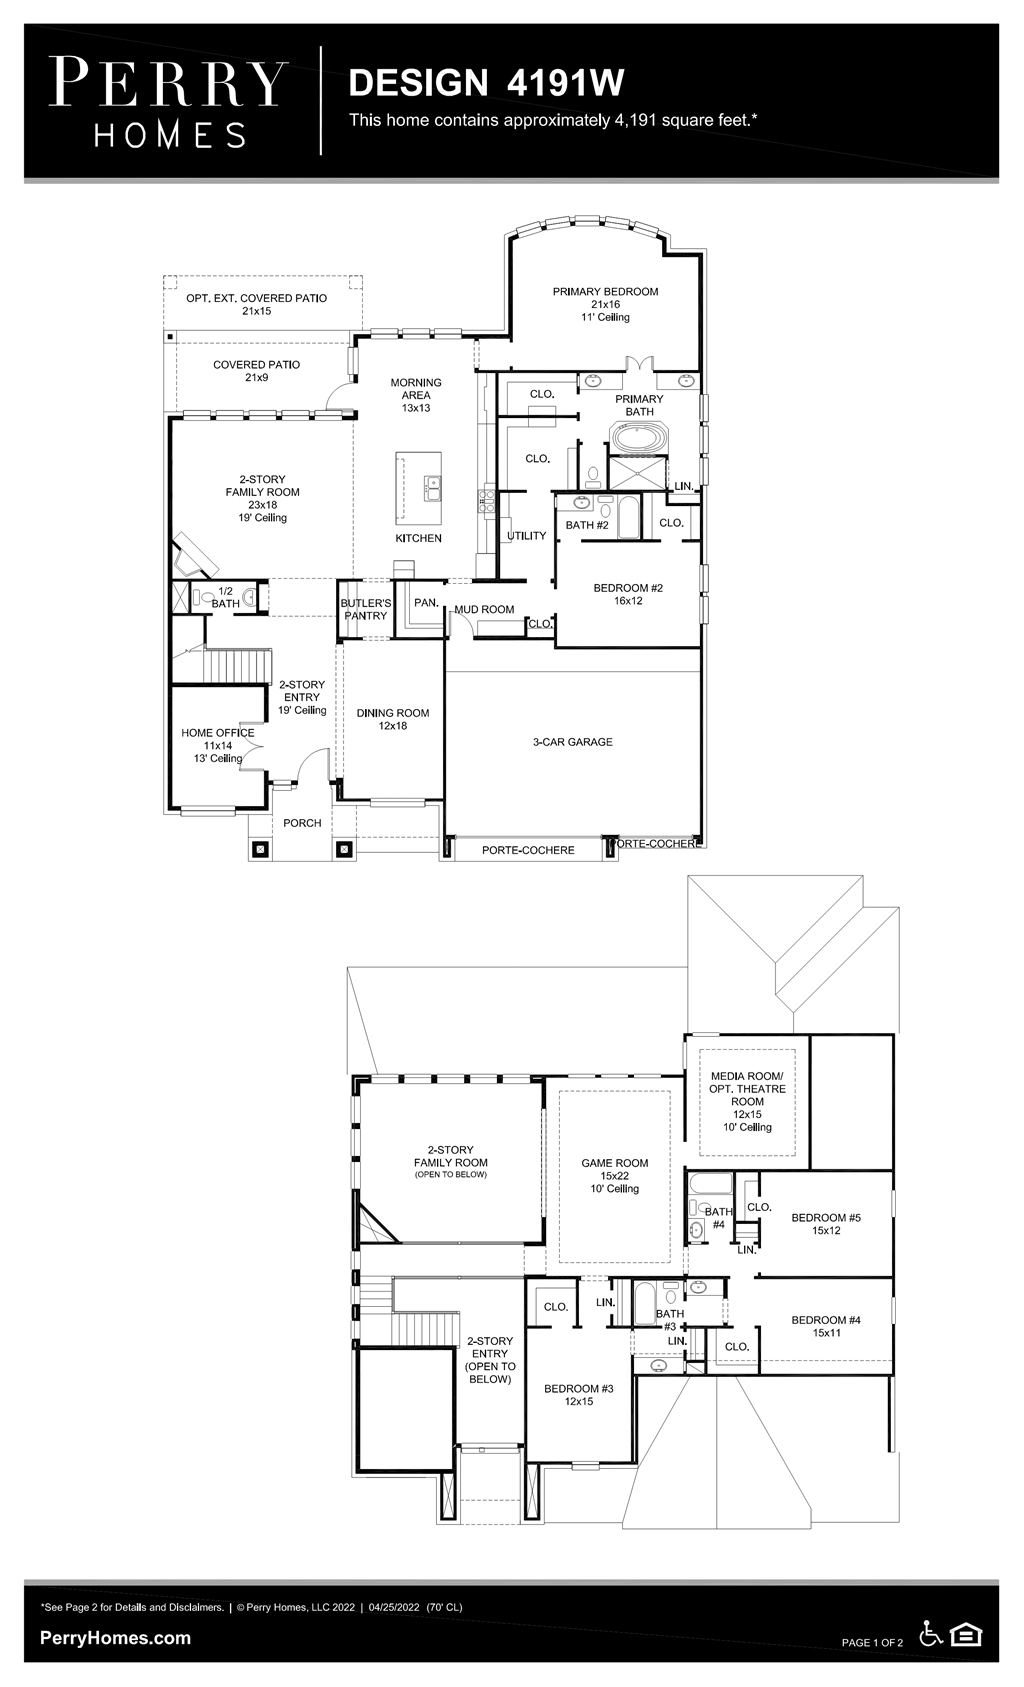 Floor Plan for 4191W